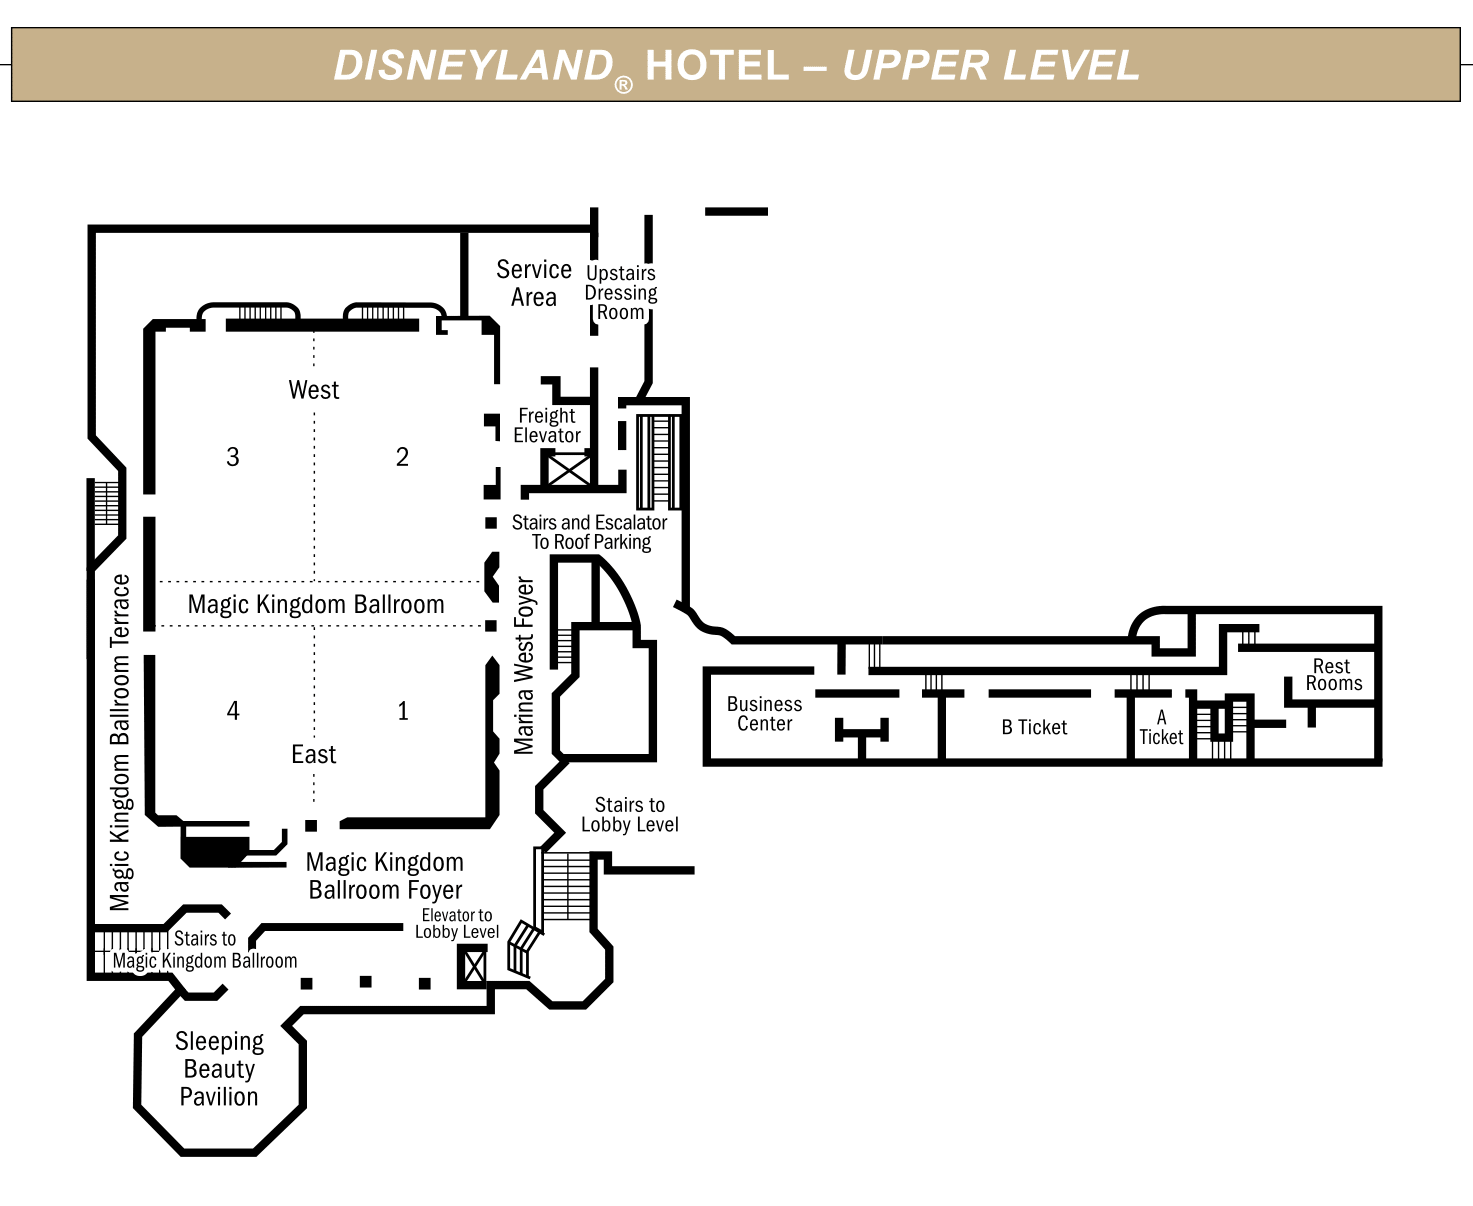 Disneyland Hotel Upper Level